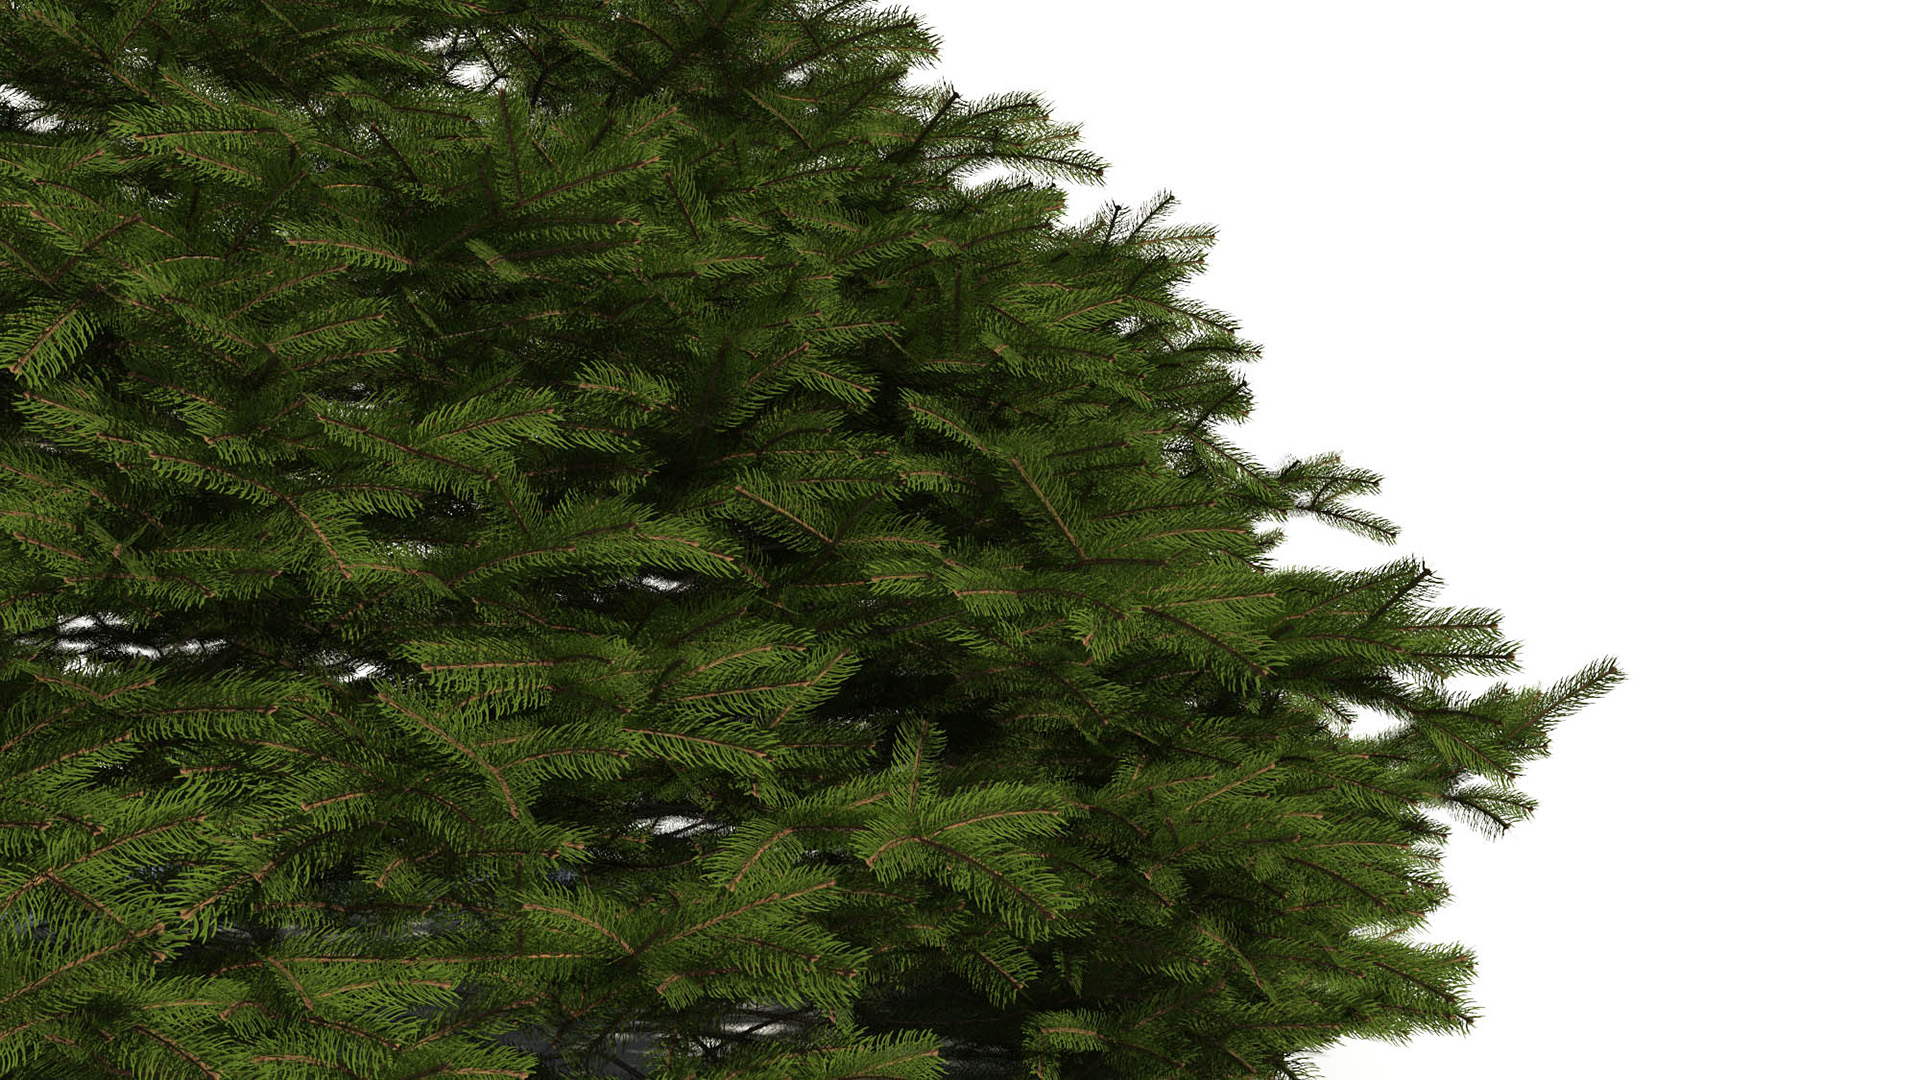 3D model of the Maxwells Norway spruce Picea abies